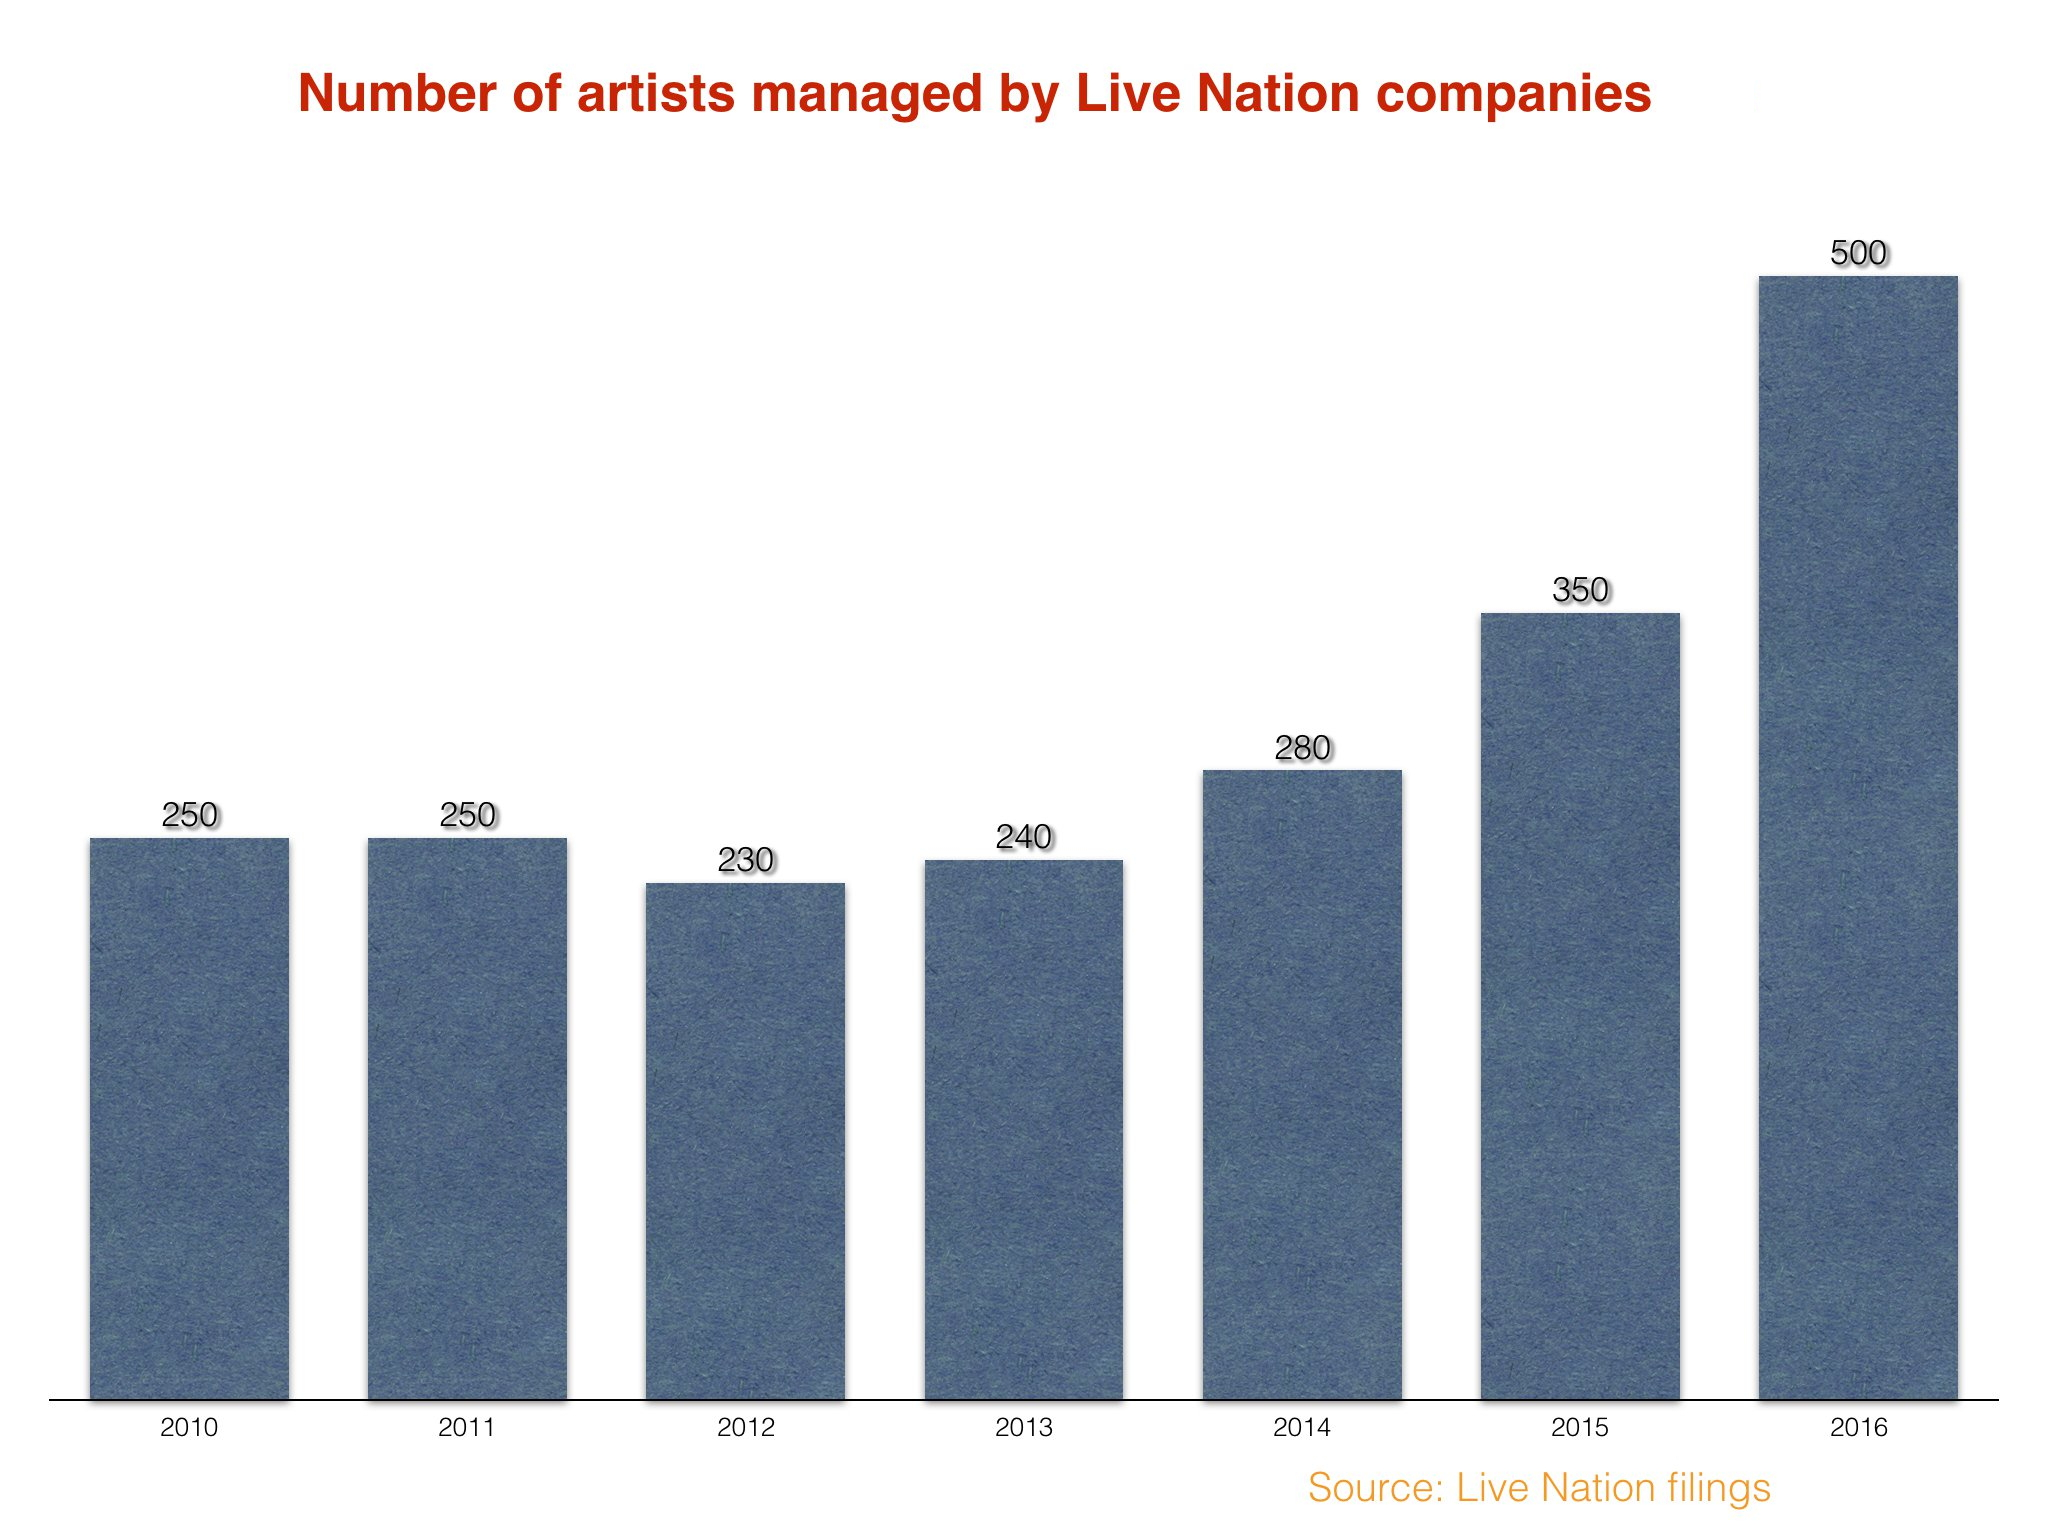 Live nation companies now manage over 500 artists worldwide music in the same document live nation mentions one competitor in particular as a larger talent representation company ie a heavyweight competitor and malvernweather Image collections